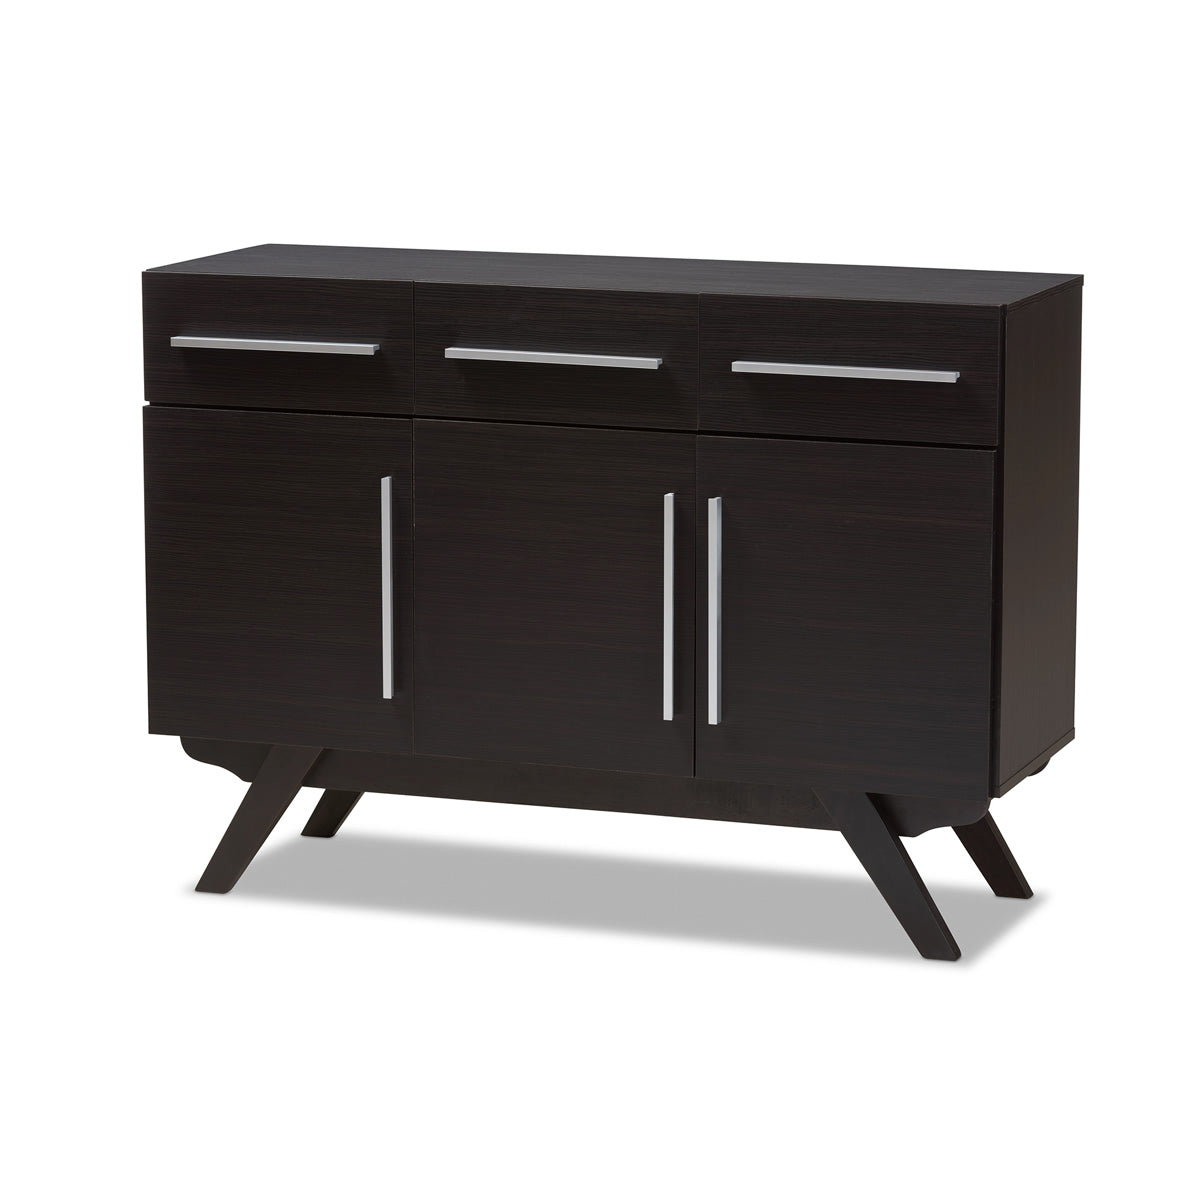 Baxton Studio Ashfield Mid-Century Modern Espresso Brown Finished Wood 3-Drawer Sideboard Baxton Studio-0-Minimal And Modern - 1